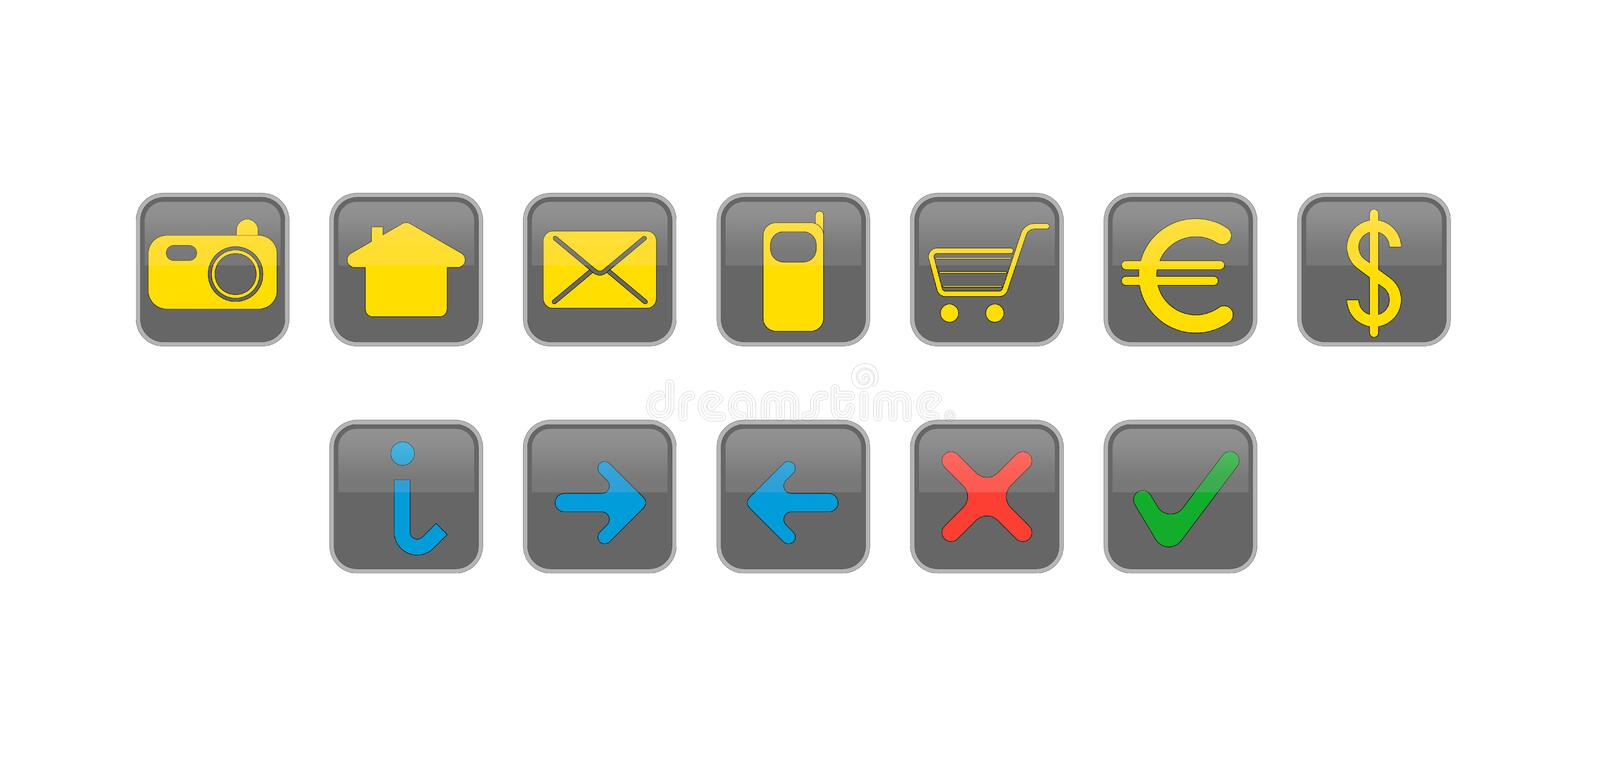 Website And Internet Icons Buttons Free Stock Photo